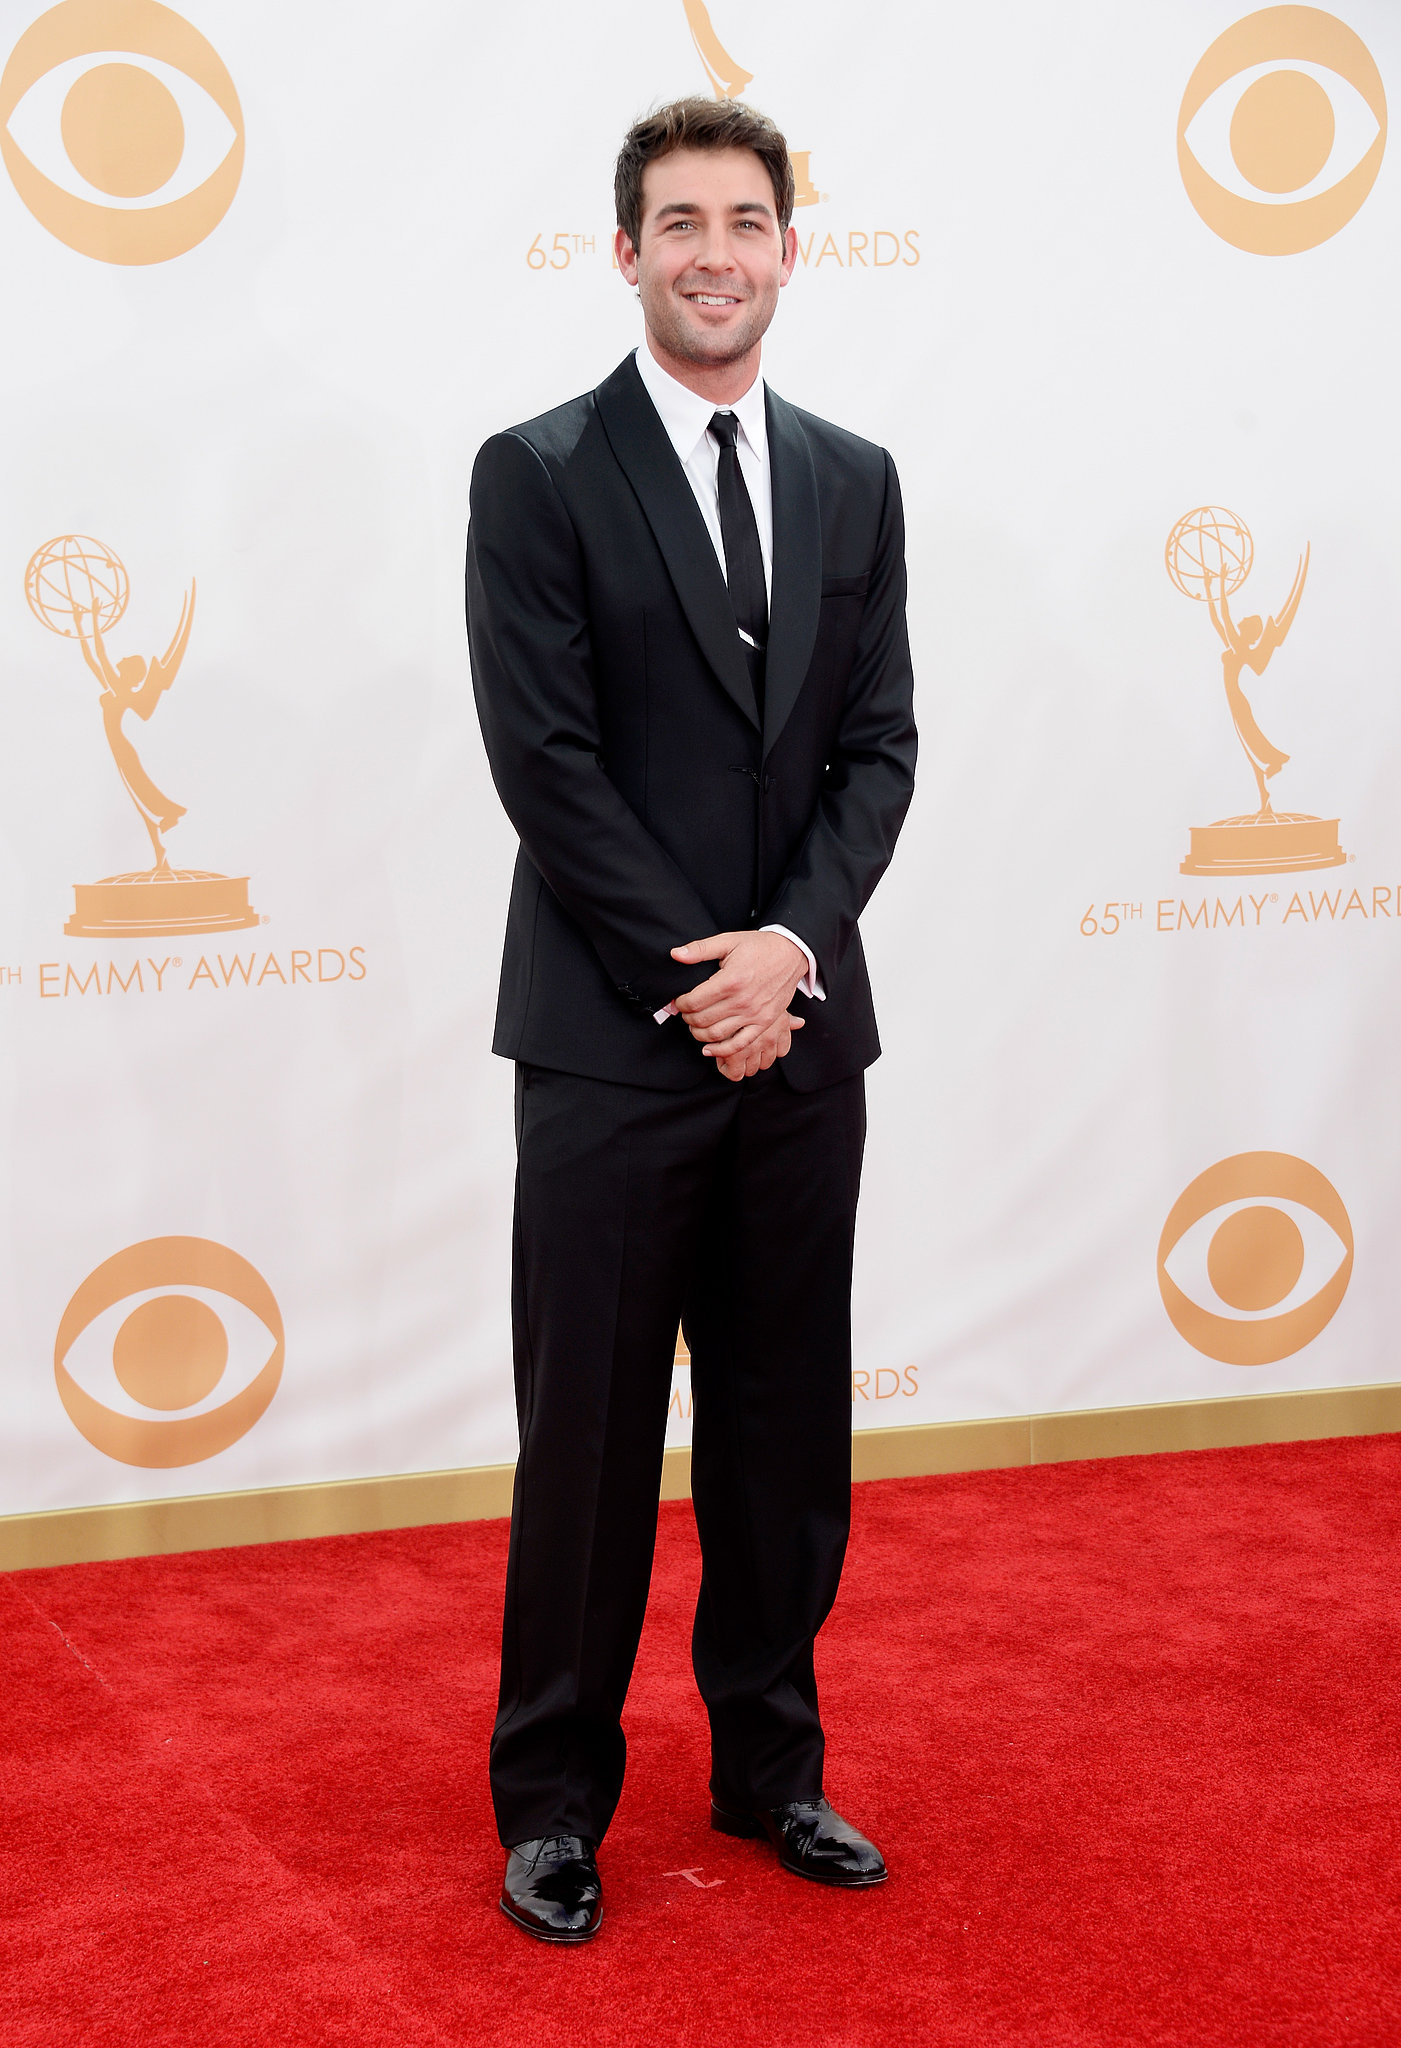 James Wolk hit the red carpet at the Emmys.